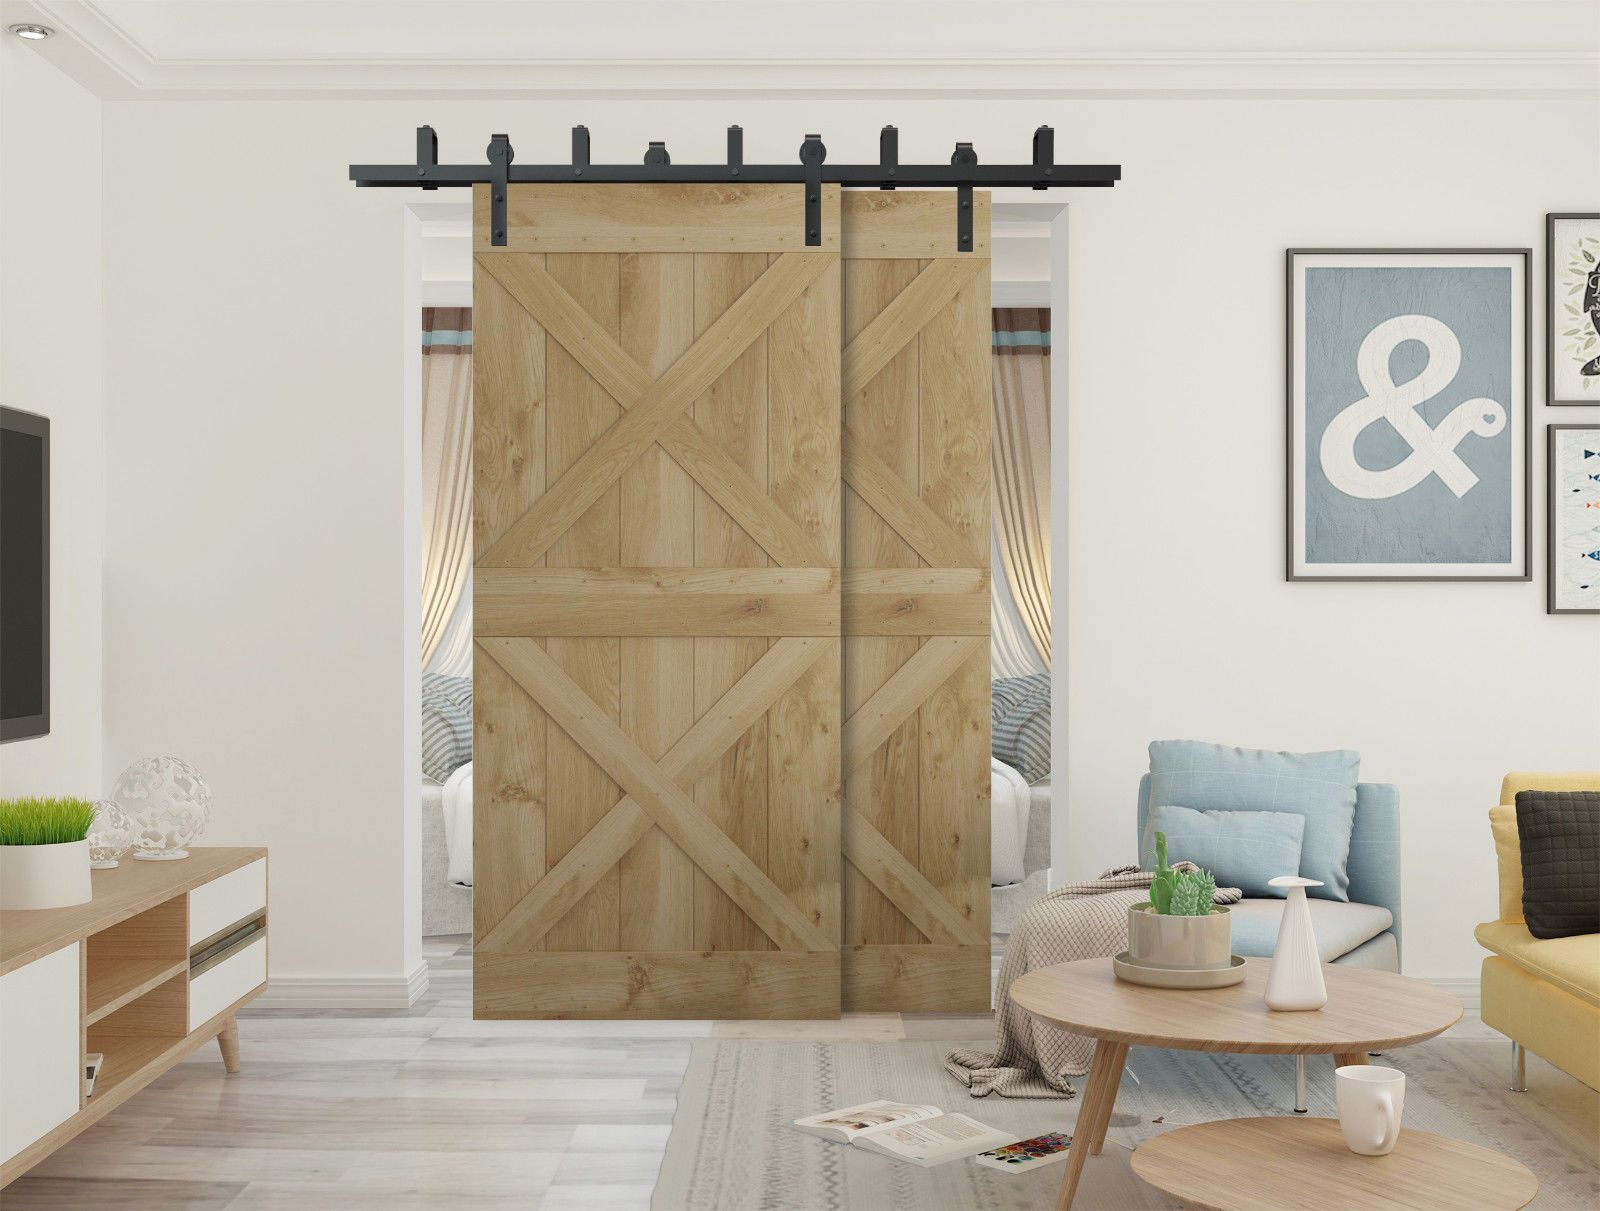 Diyhd Rustic Black Bypass Double Sliding Barn Door Hardware Bypass Kit Ebay Doors Interior French Doors Interior Sliding Doors Interior